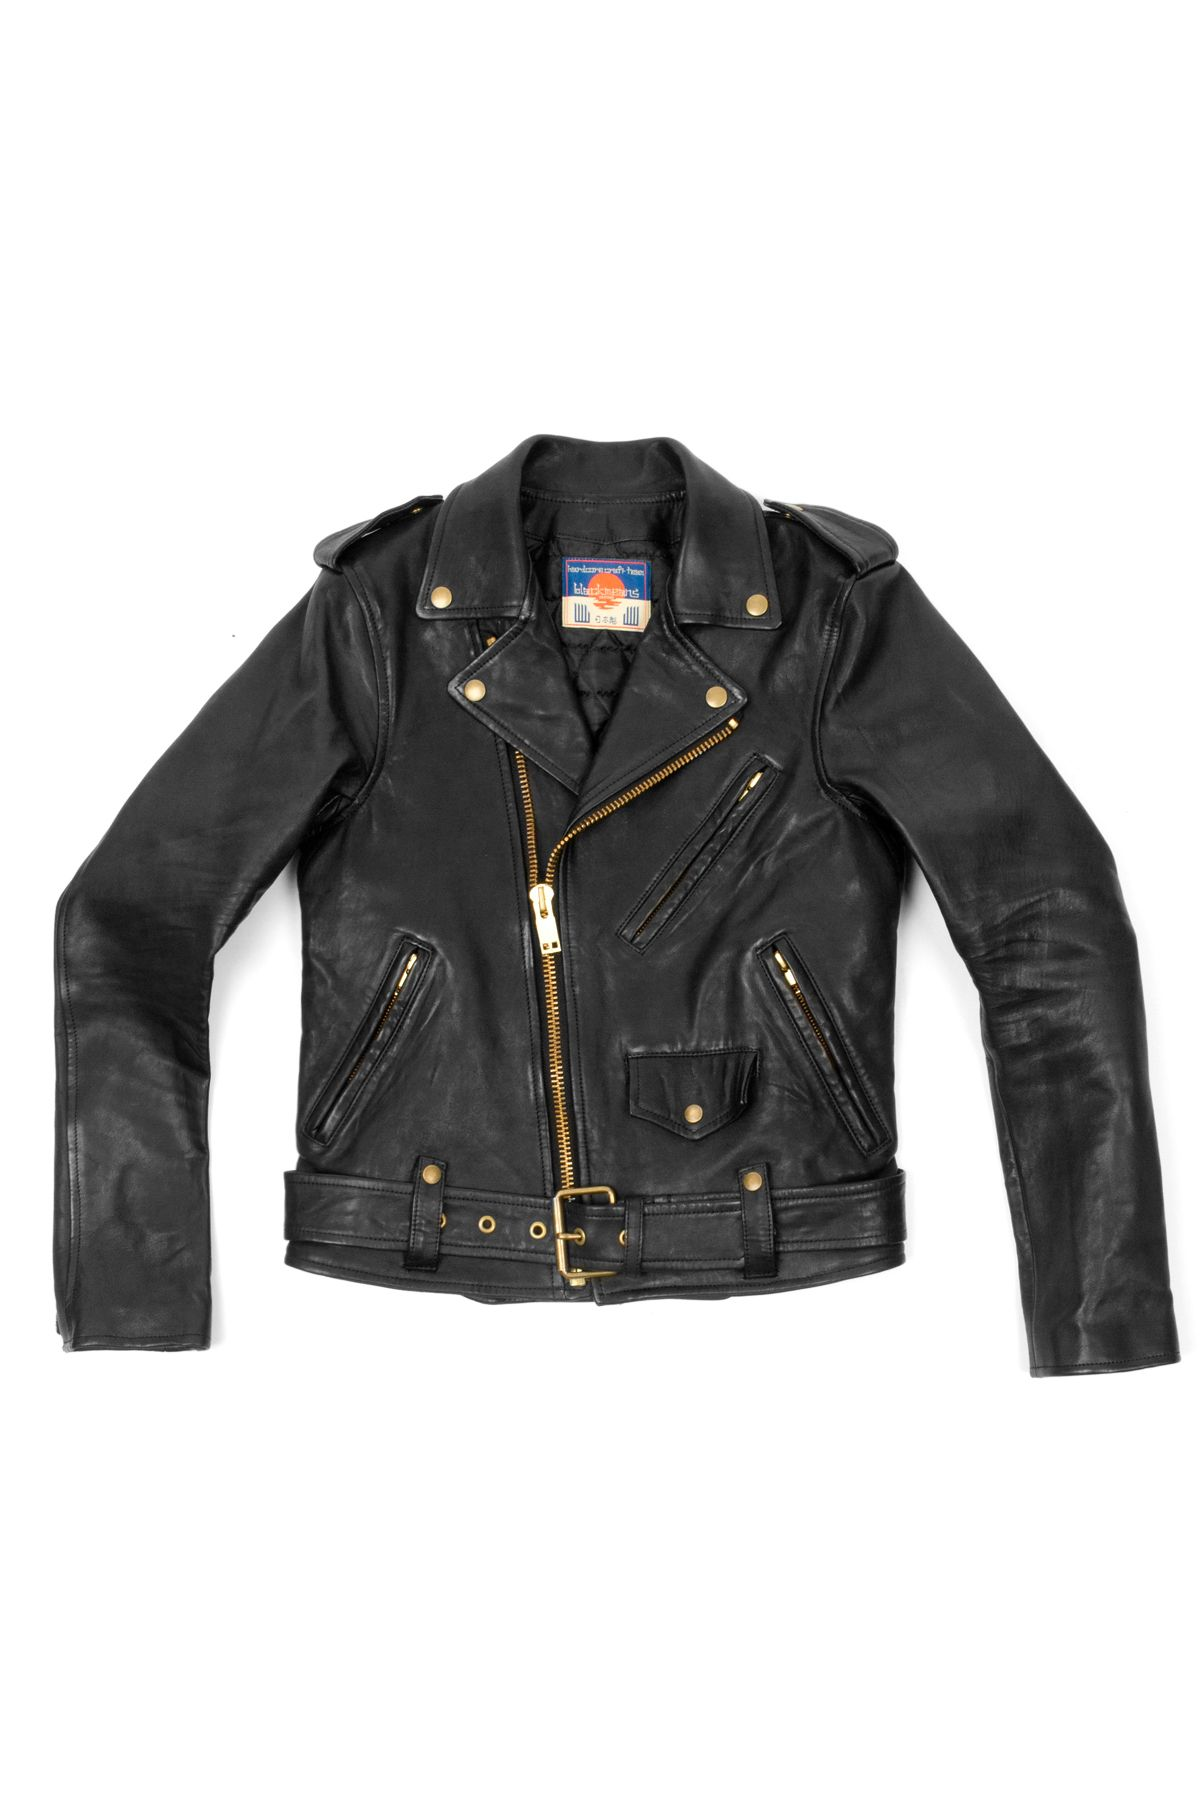 Blackmeans Leather Jacket 2 420 Is So Steep But This Is So Pretty Leather Jacket Black Leather Biker Jacket Womens Moto Jacket [ 1800 x 1200 Pixel ]